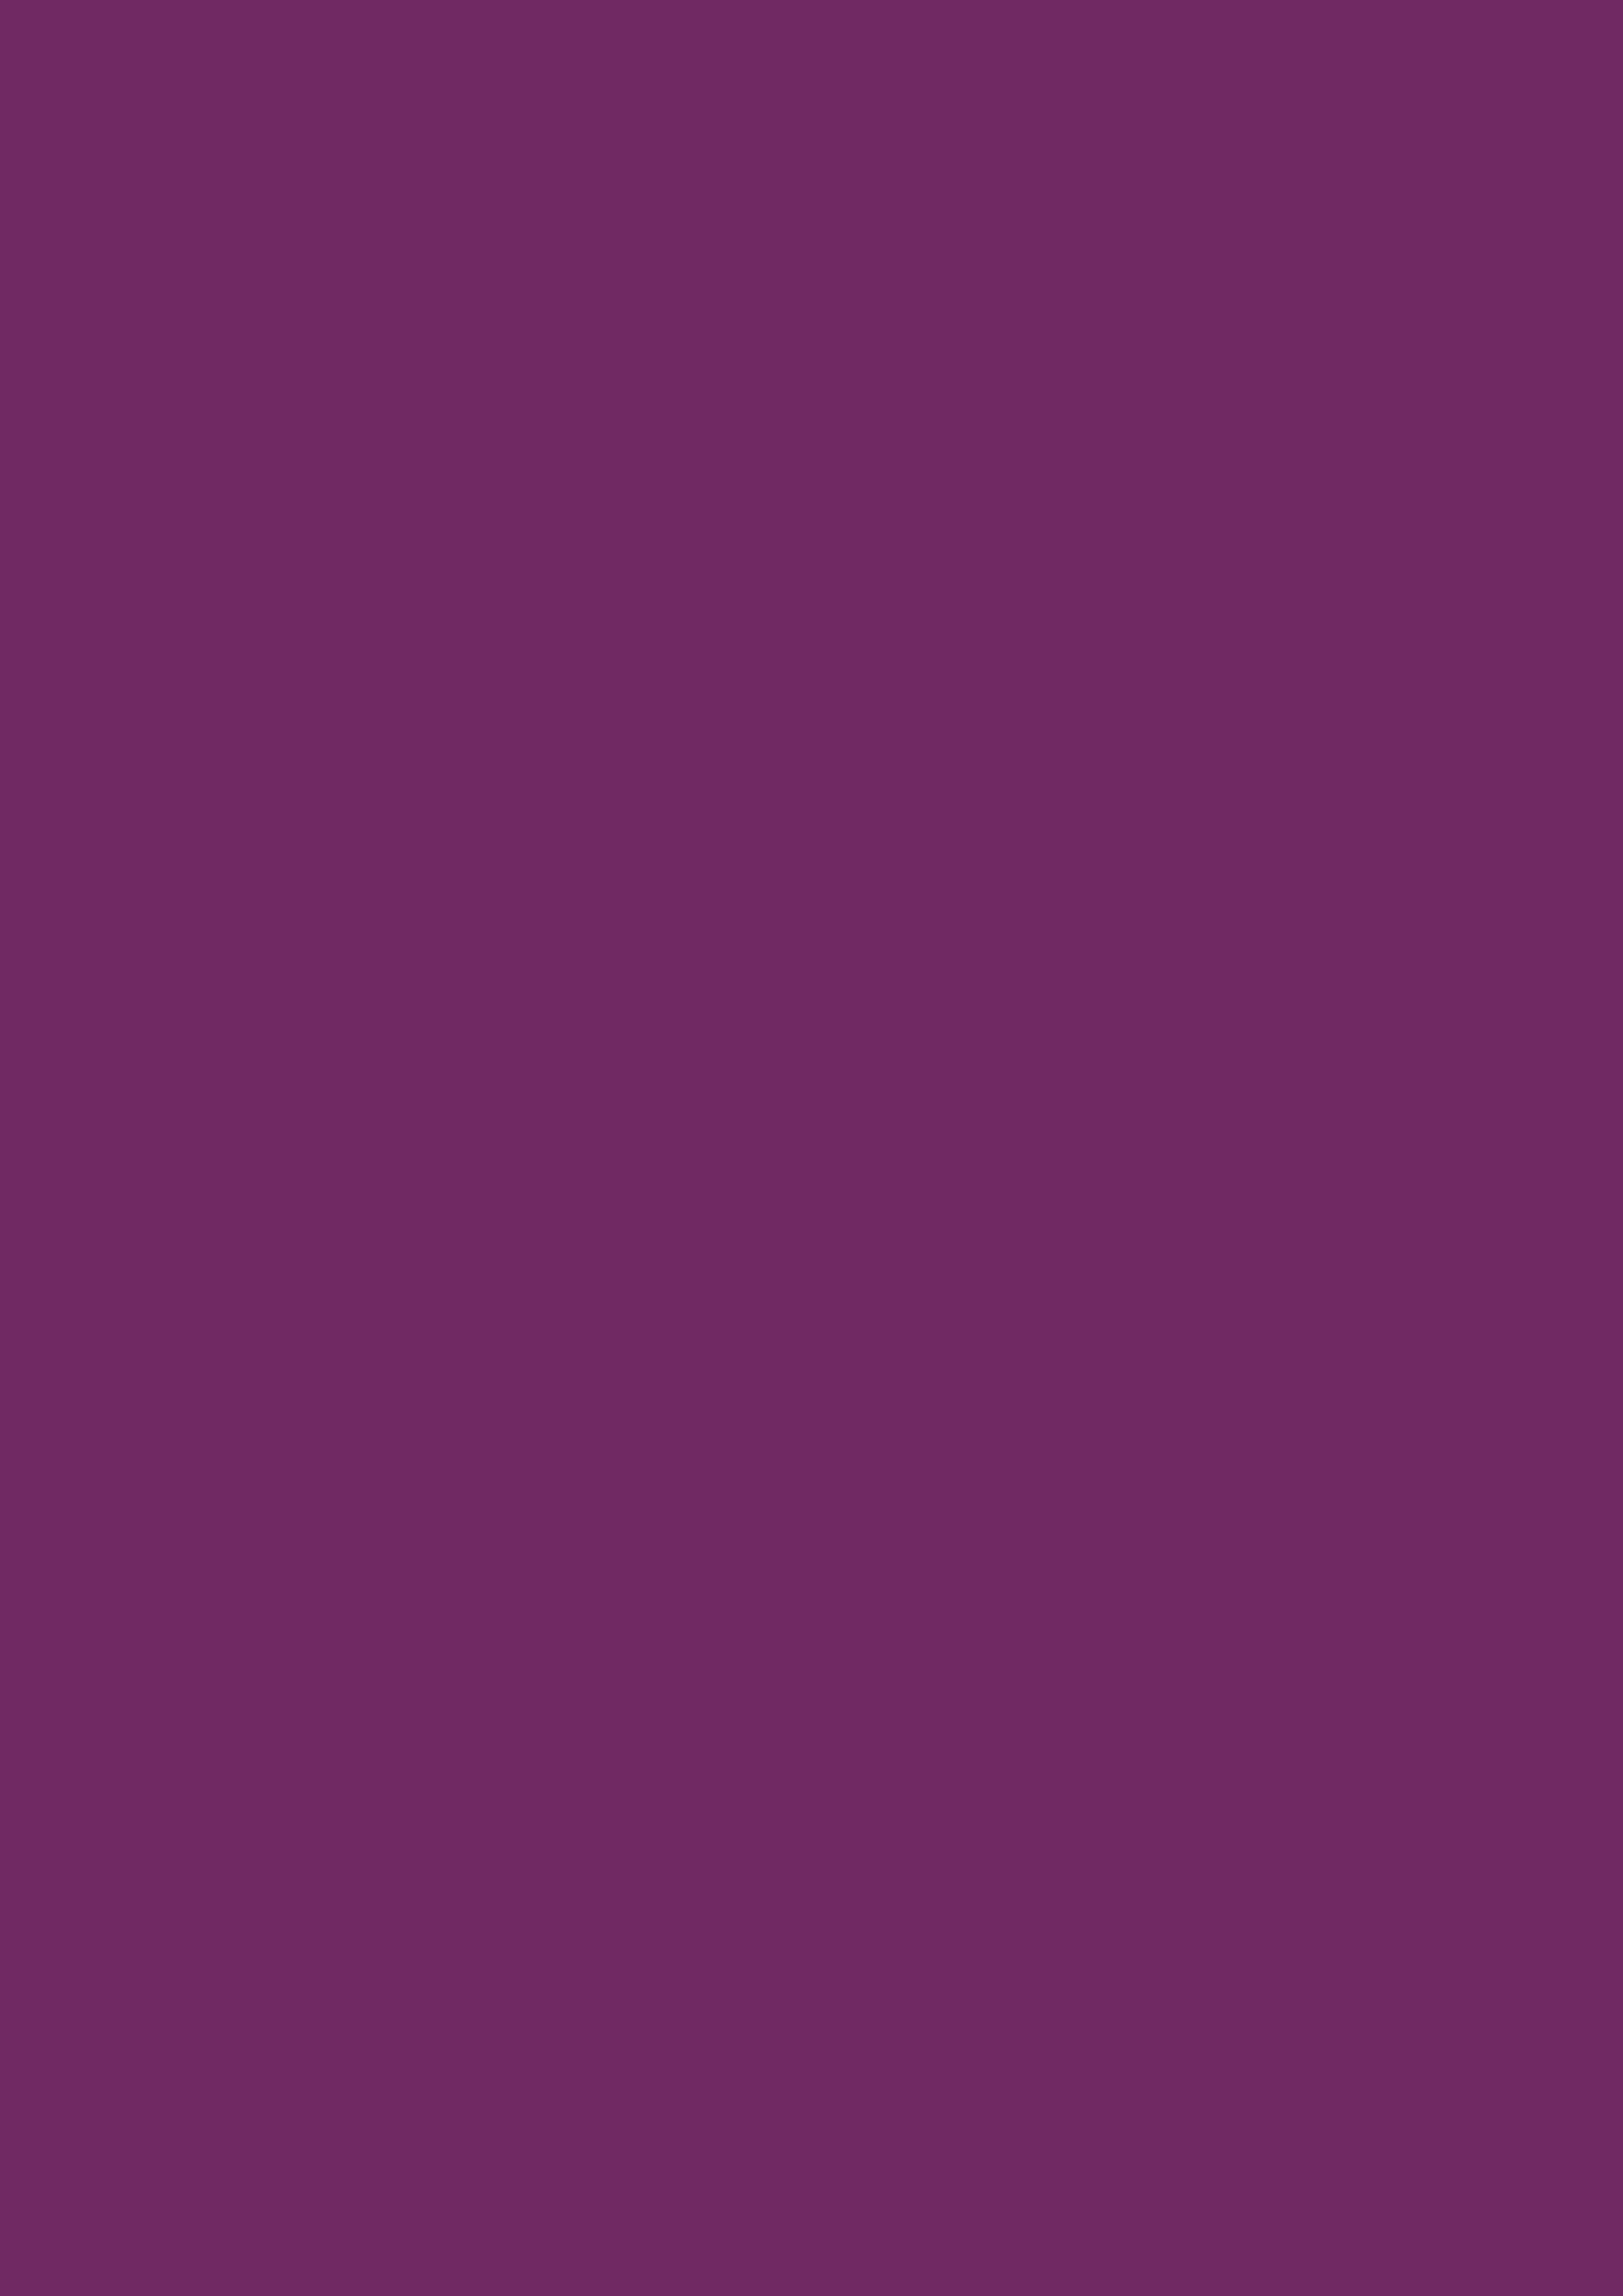 2480x3508 Byzantium Solid Color Background